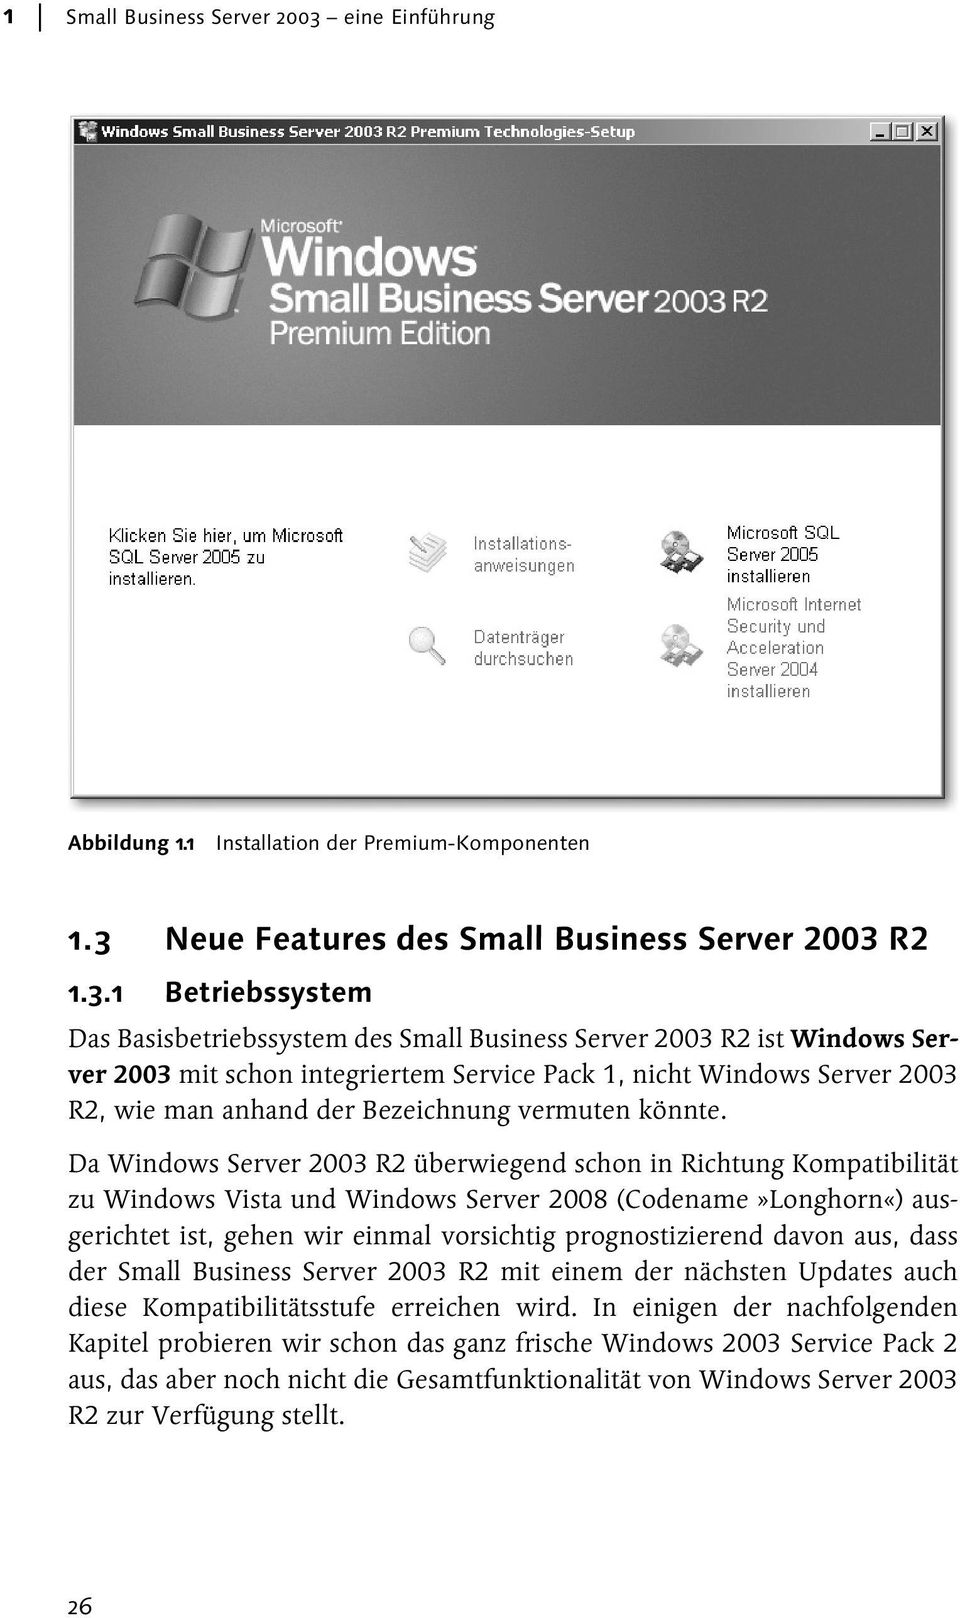 Neue Features des Small Business Server 2003